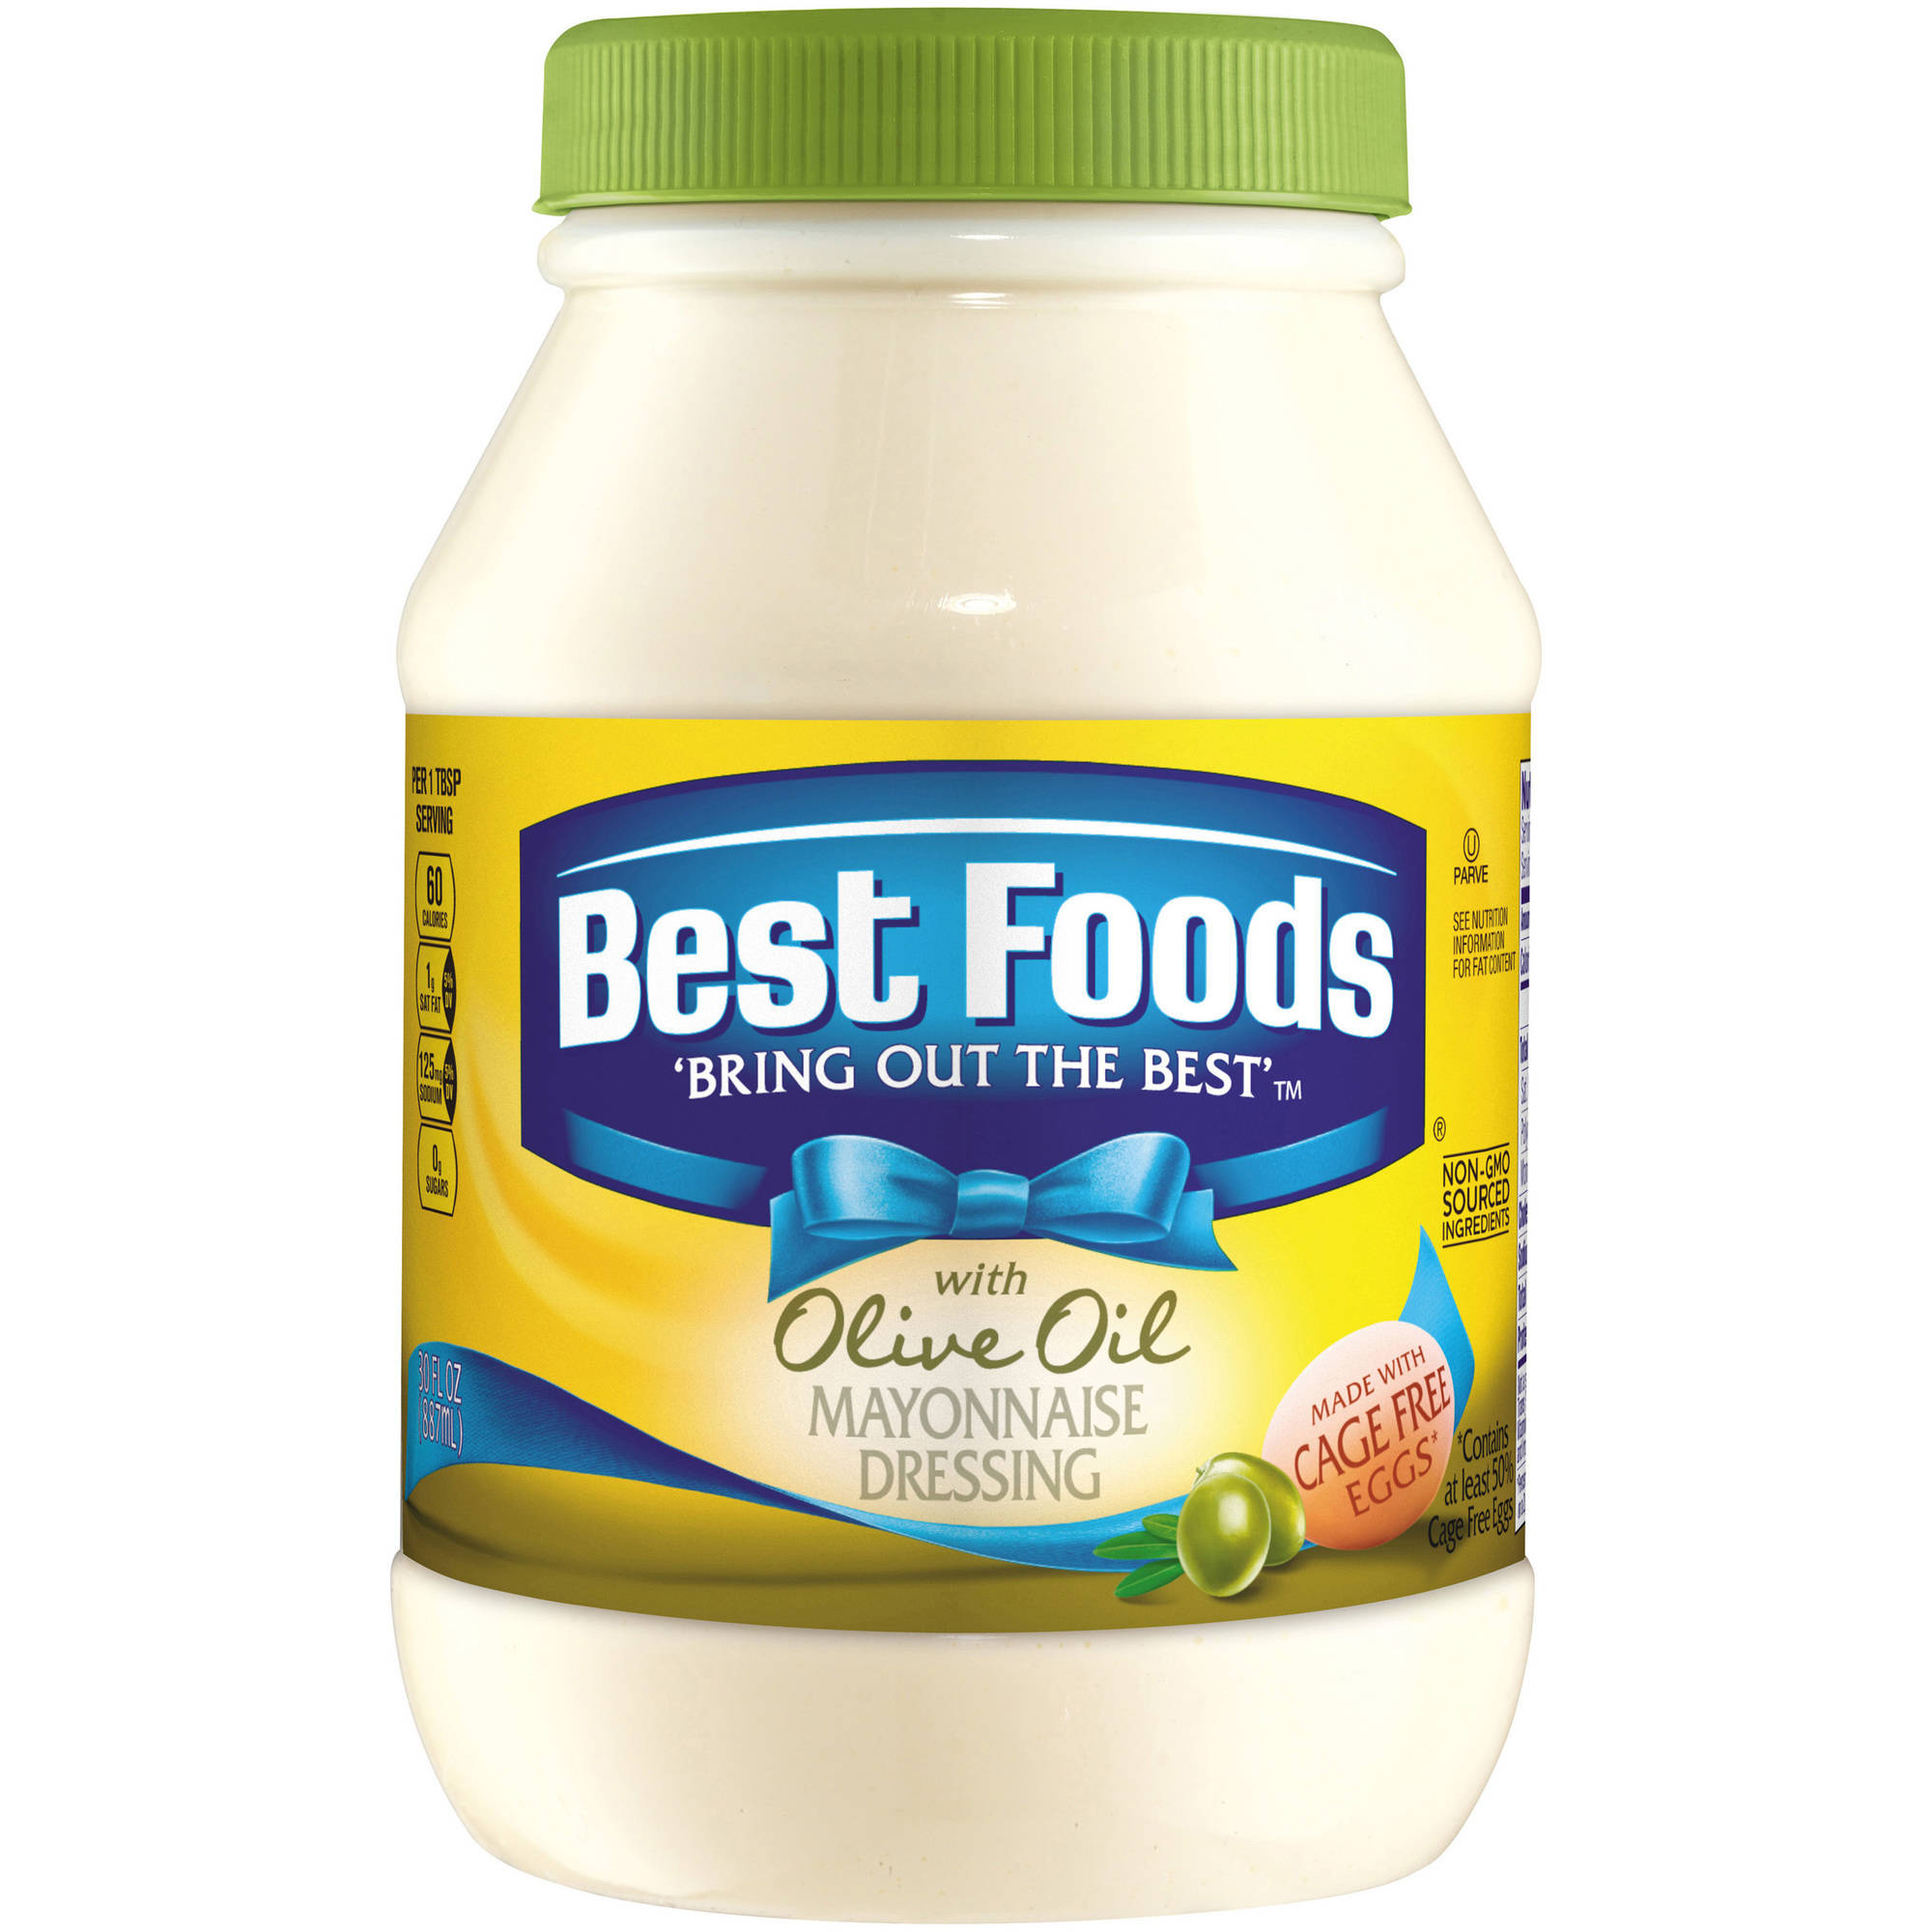 Best Foods Mayonnaise Dressing with Olive Oil, 30 oz